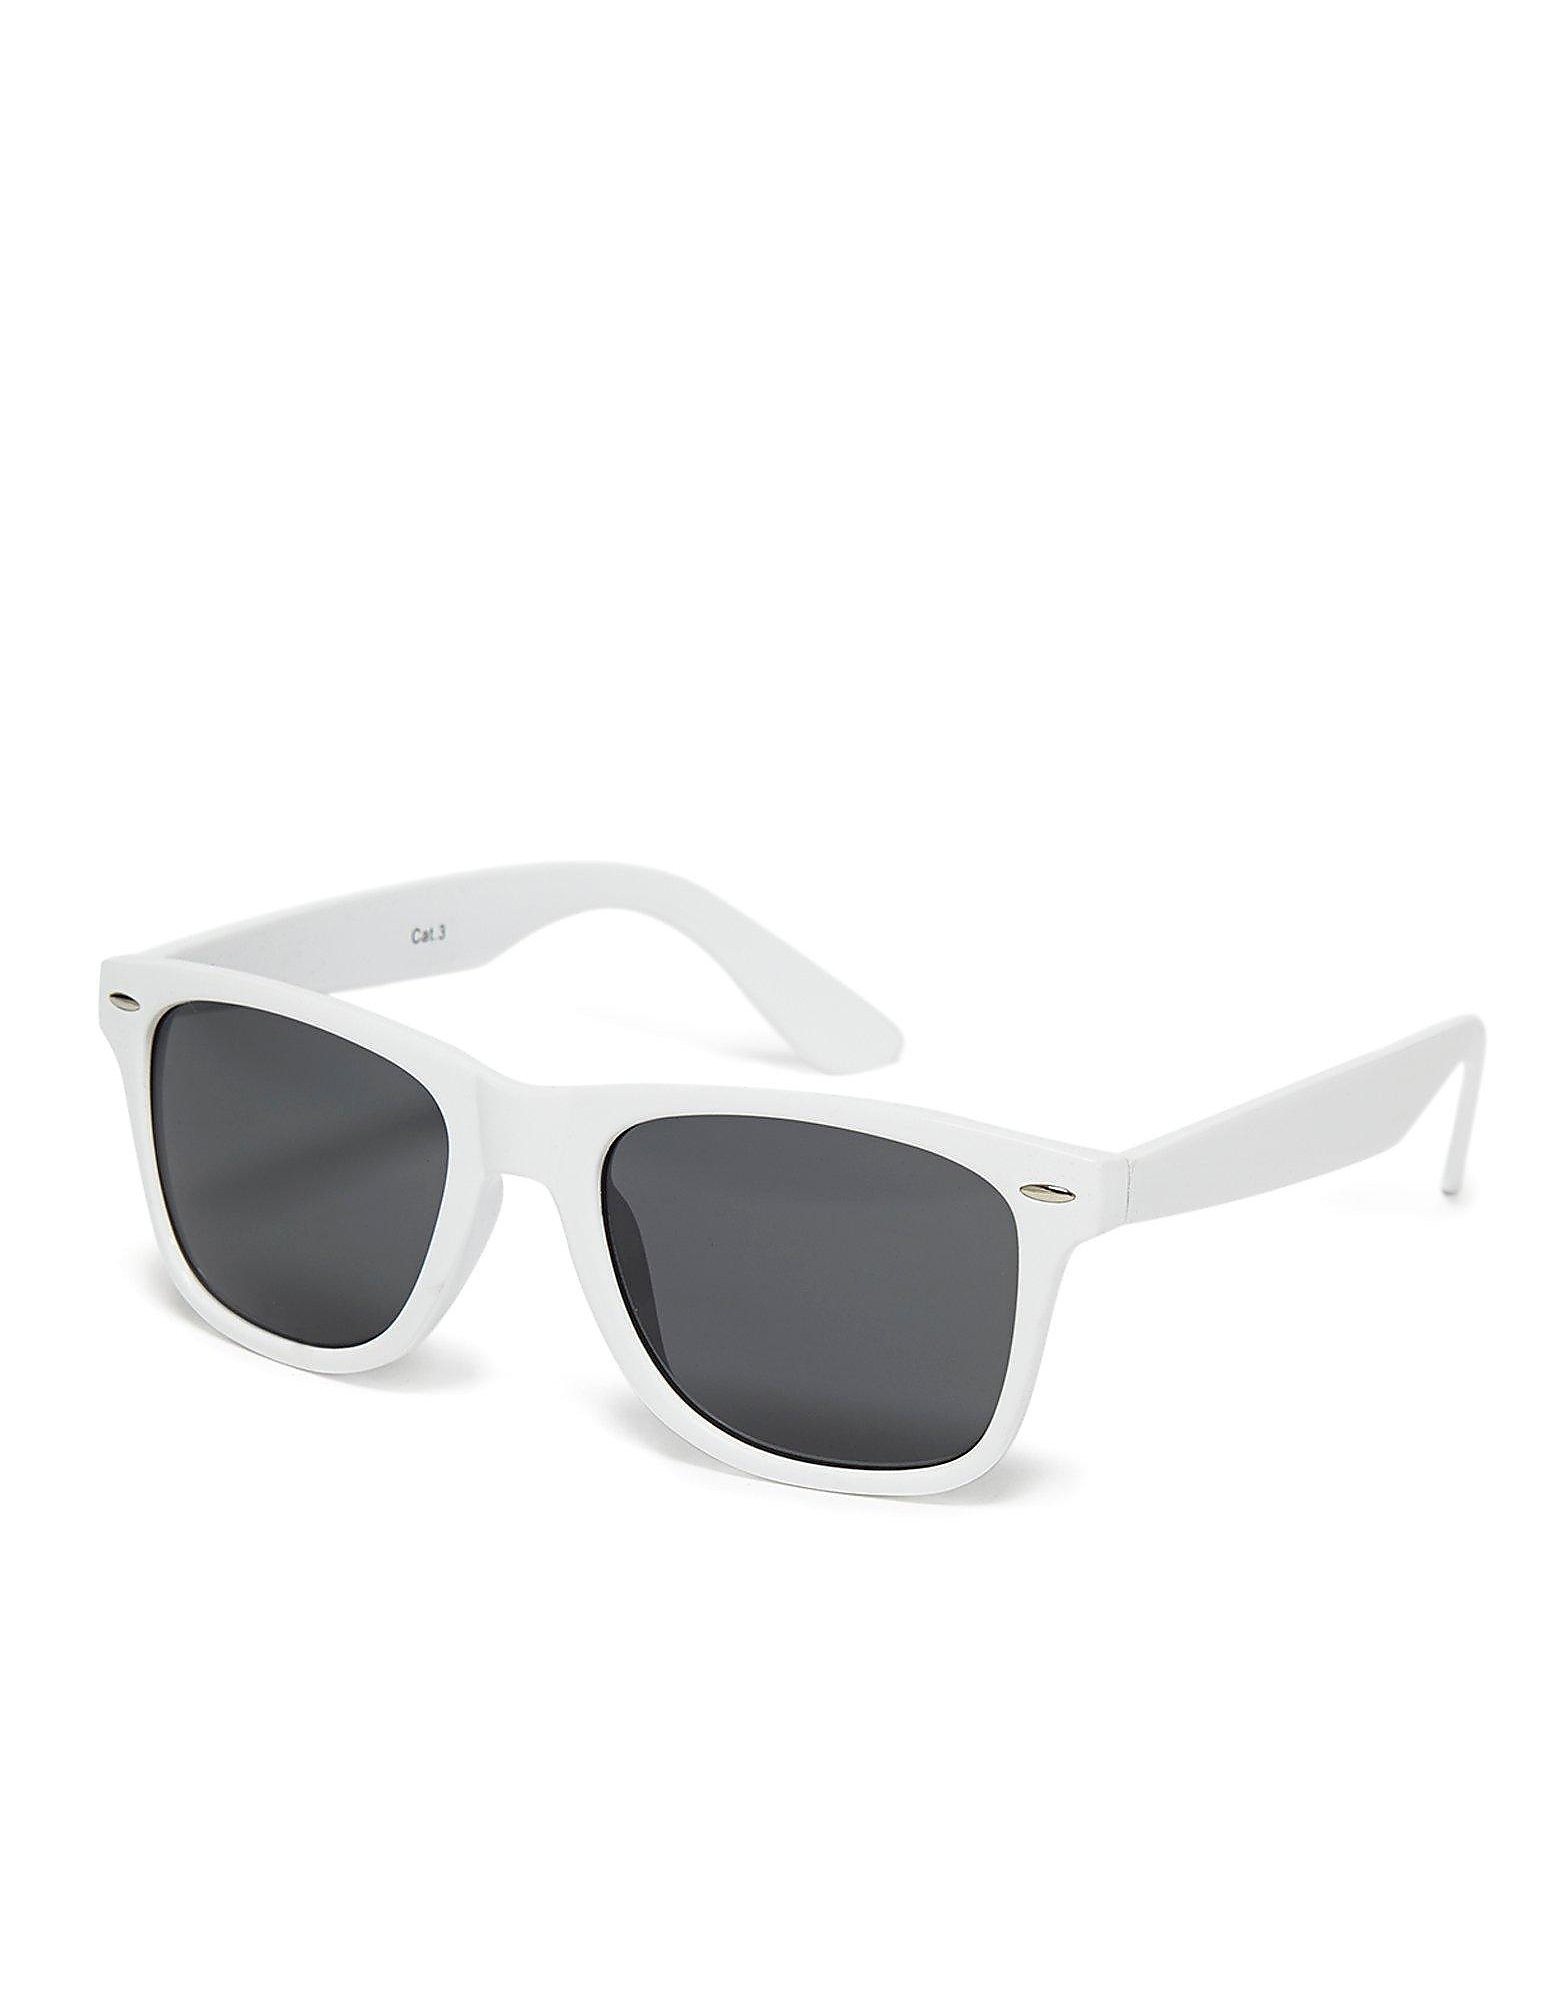 Brookhaven Caton Sunglasses